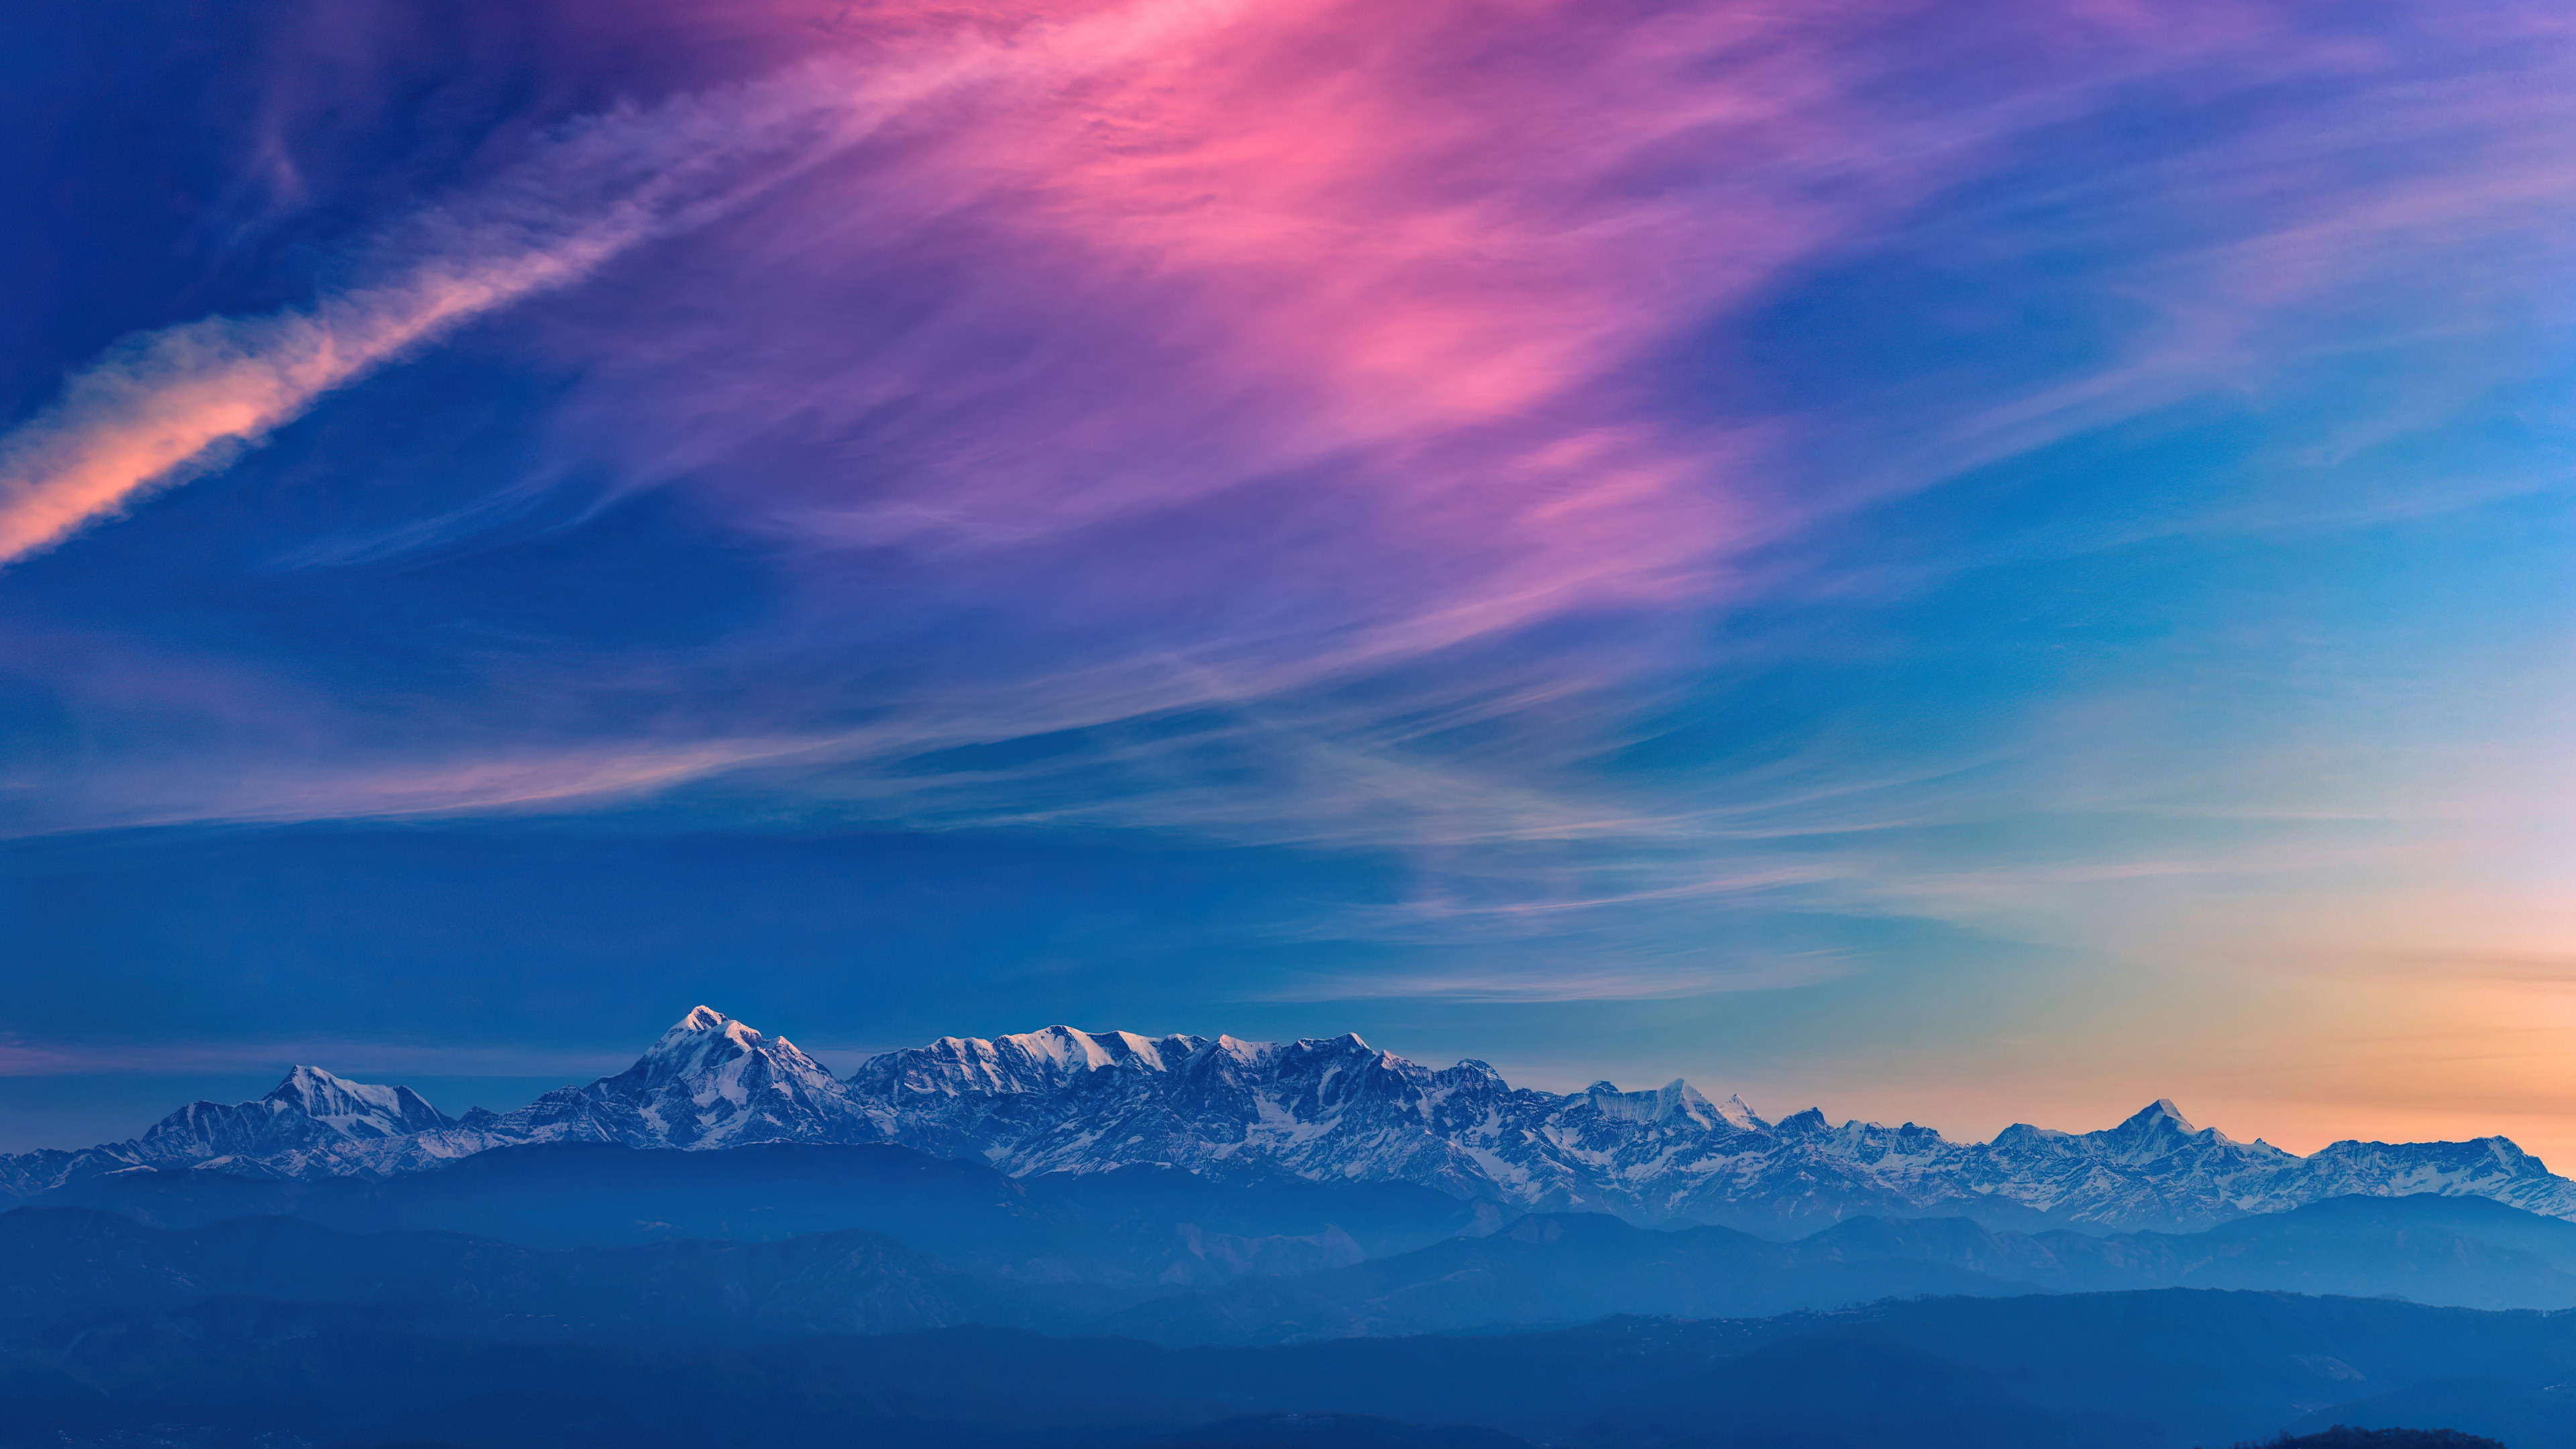 Wallpaper Mountains in colorful sunset